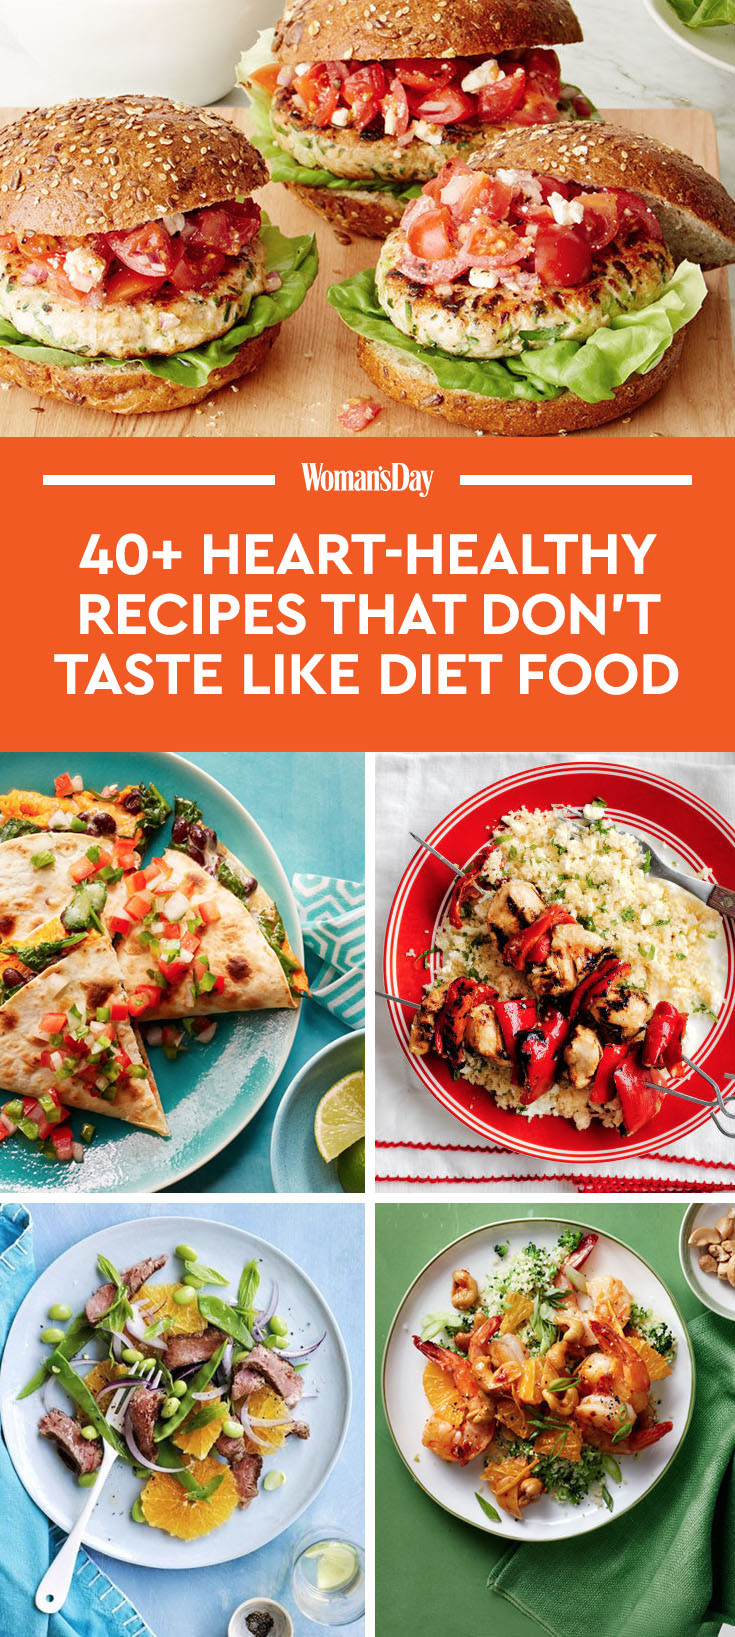 Heart Healthy Diets Recipes  55 Heart Healthy Dinner Recipes That Don t Taste Like Diet